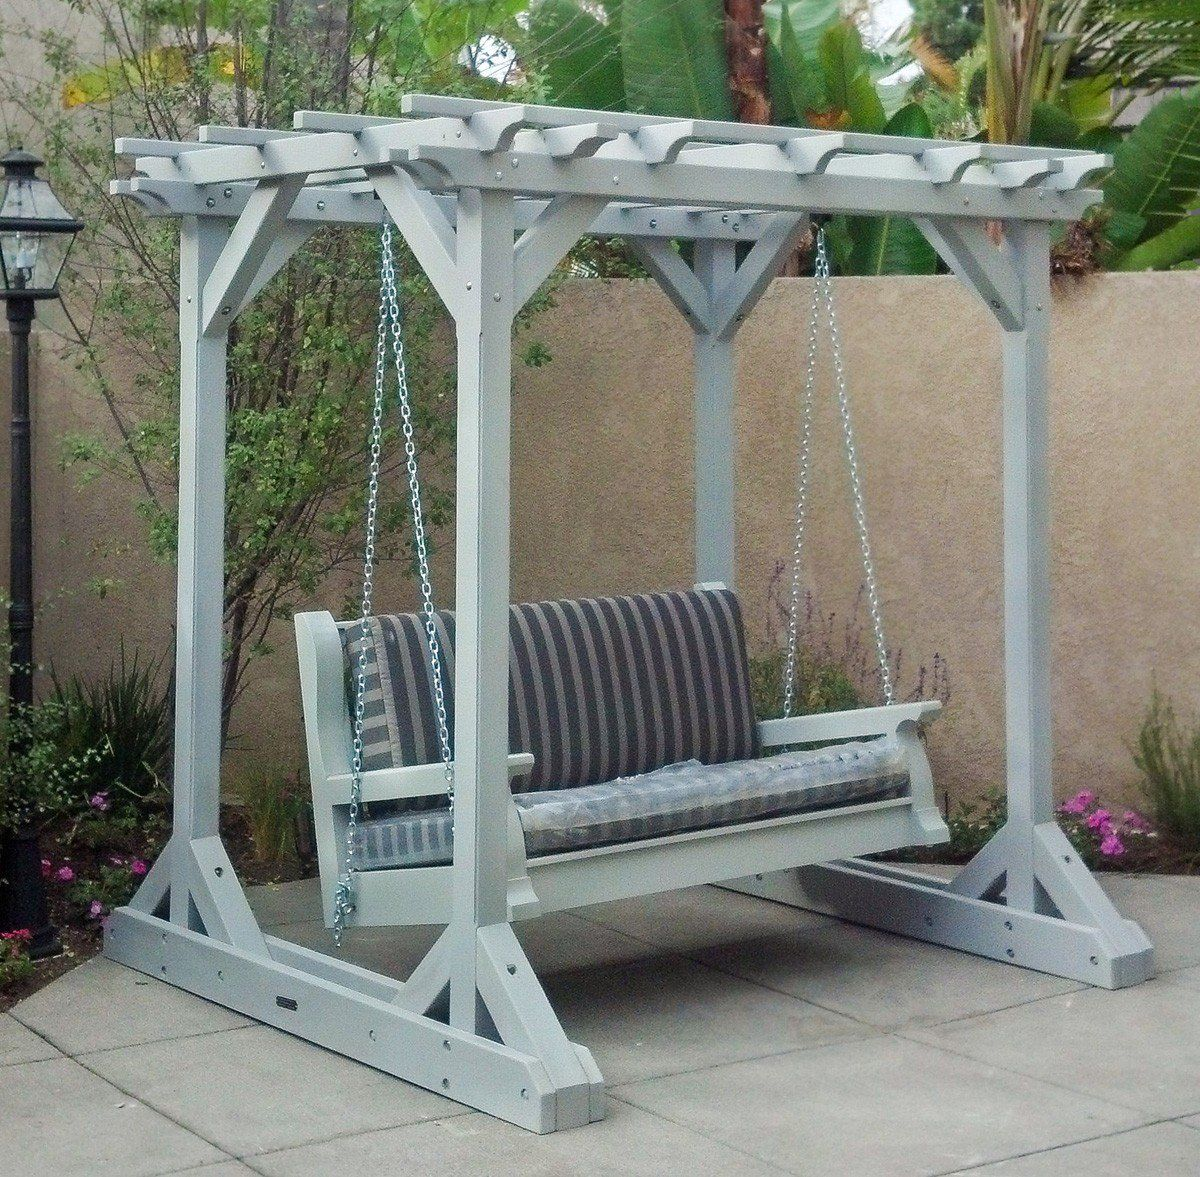 Redwood Pergola and Swing Combo (Options: 8' x 6', Standard Classic Bench Swing, No Engraving, Douglas-fir, Gray Oil-Based Primer). Custom Swing Added by Customer Request. Photo Courtesy of Barbara Mellinger of Costa Mesa, CA.